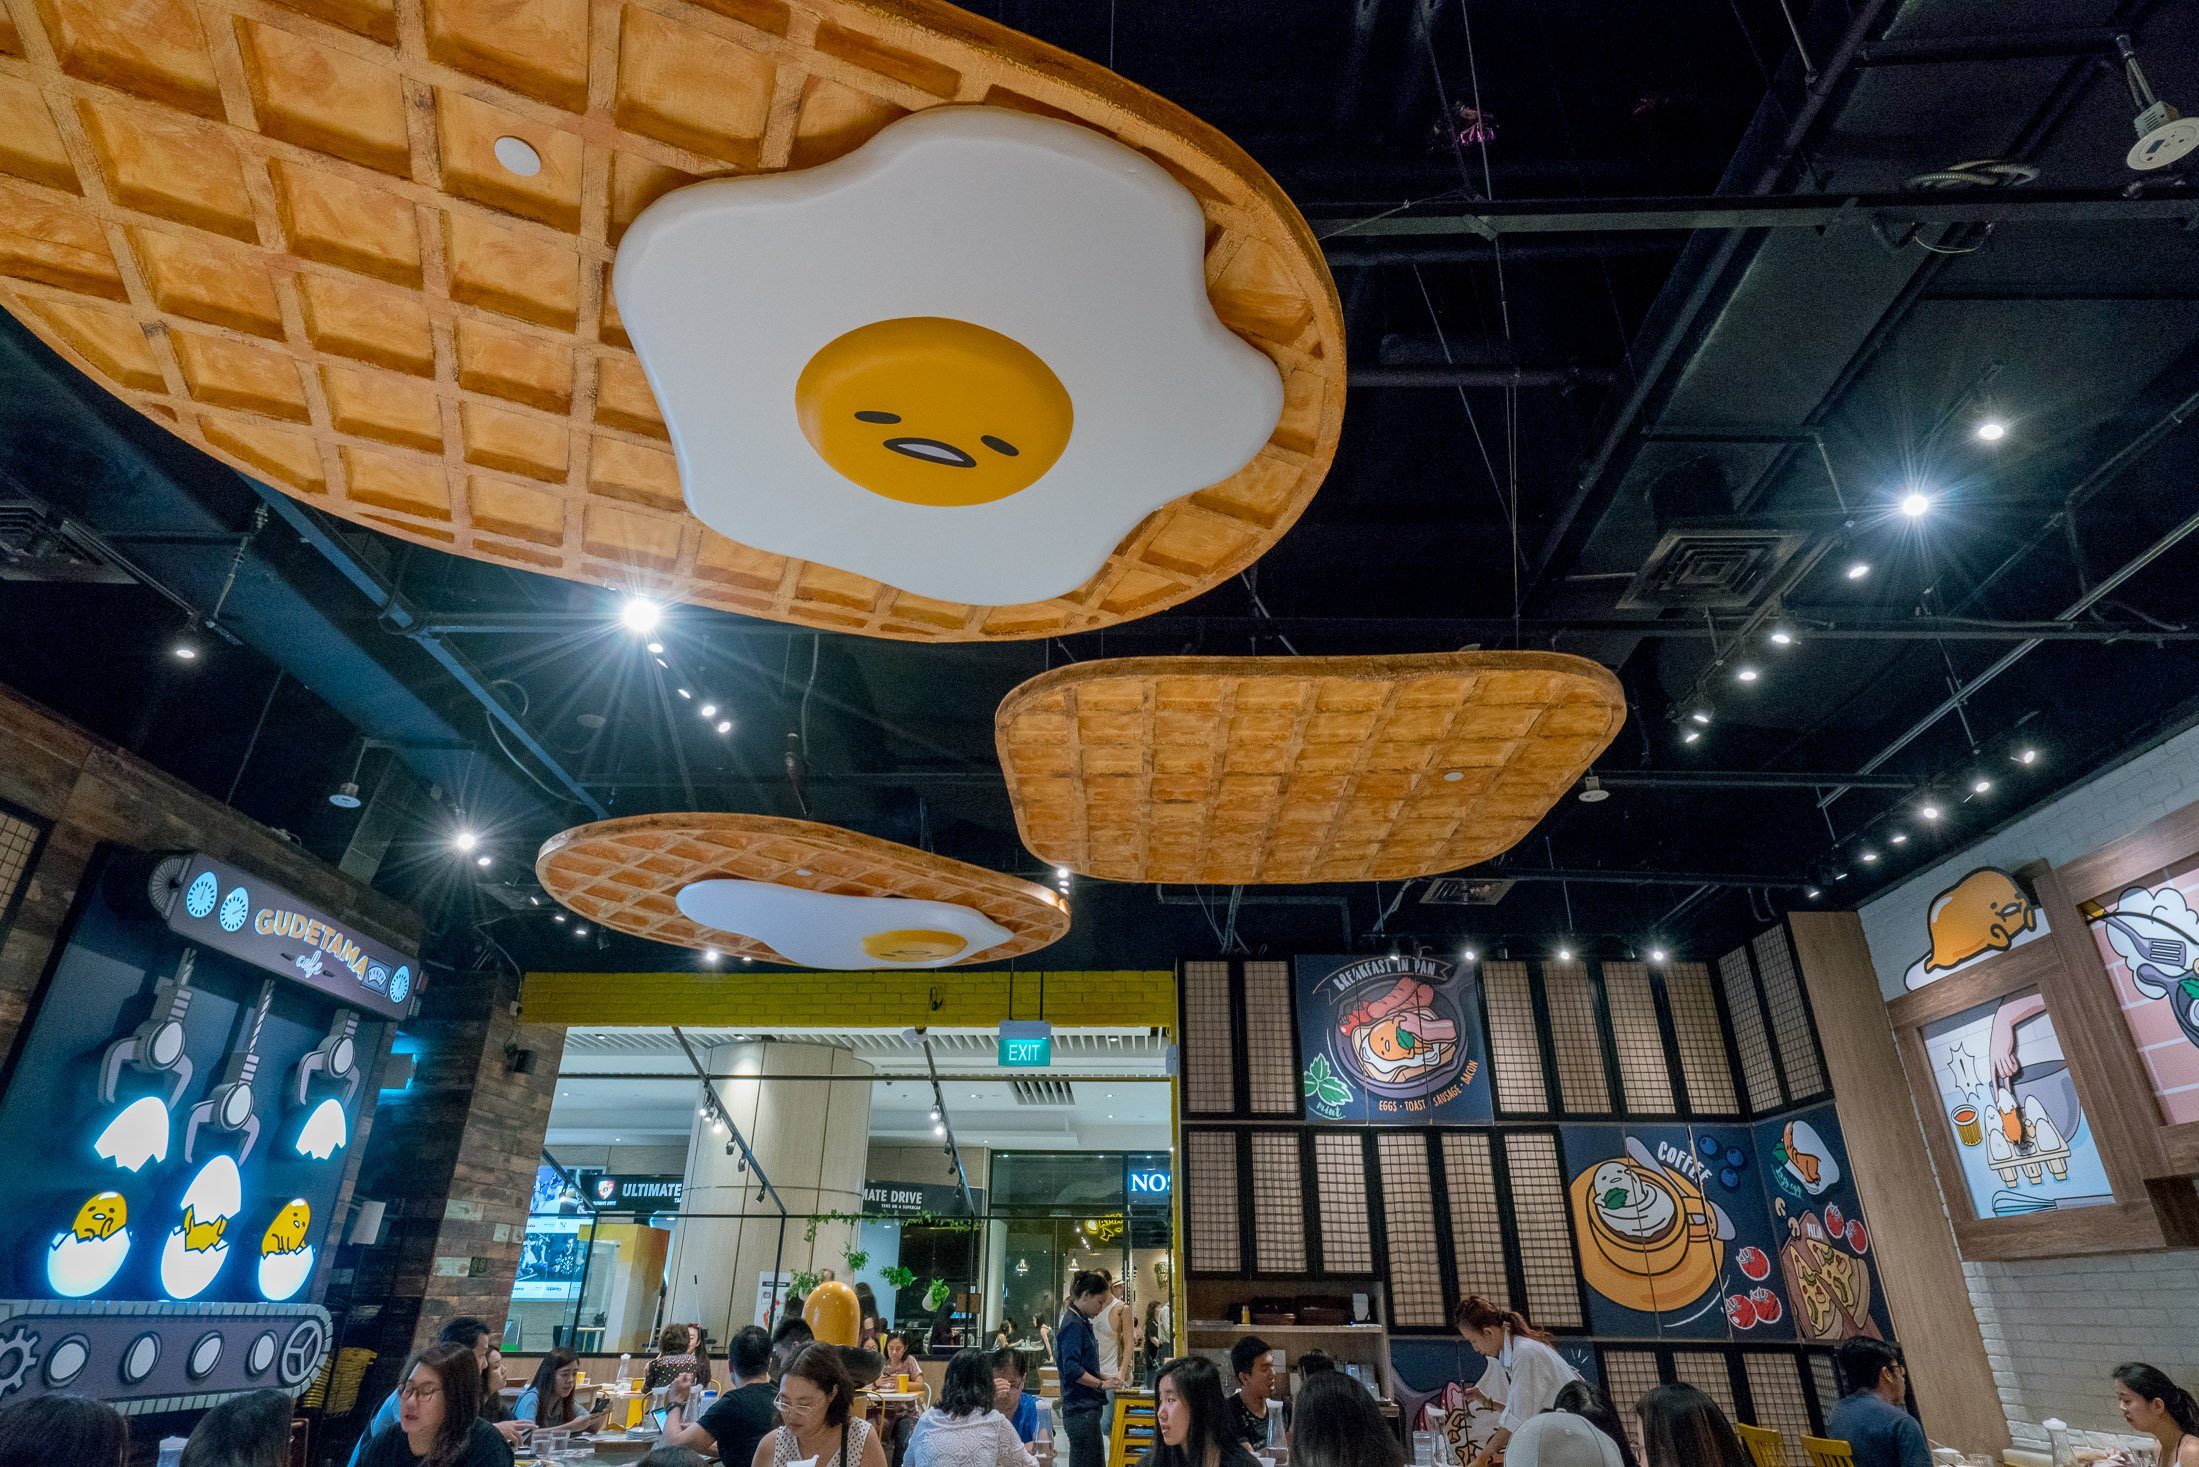 Inside the Gudetama Cafe in Singapore